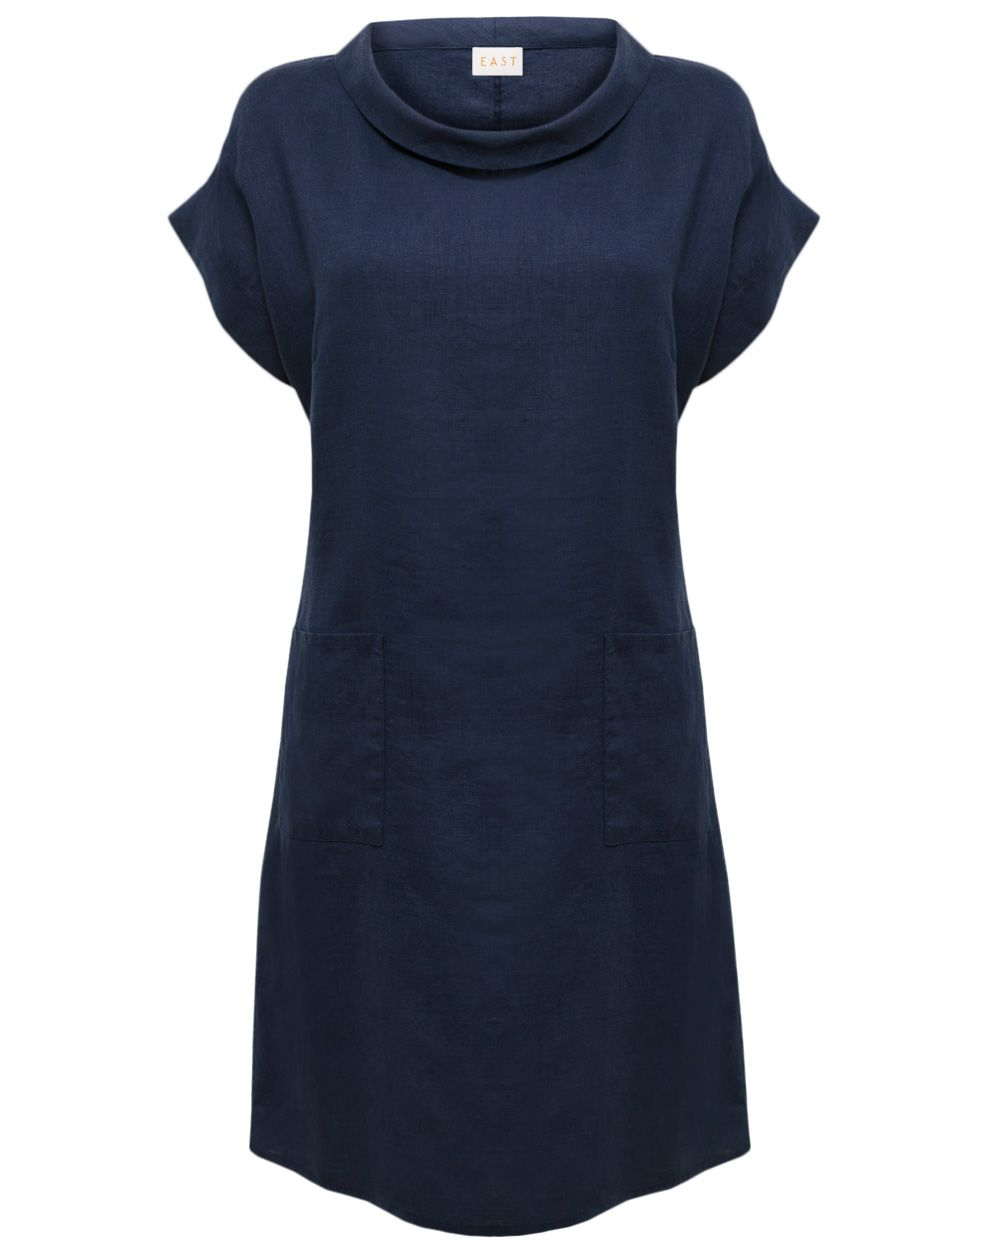 Bardot Neck Dress